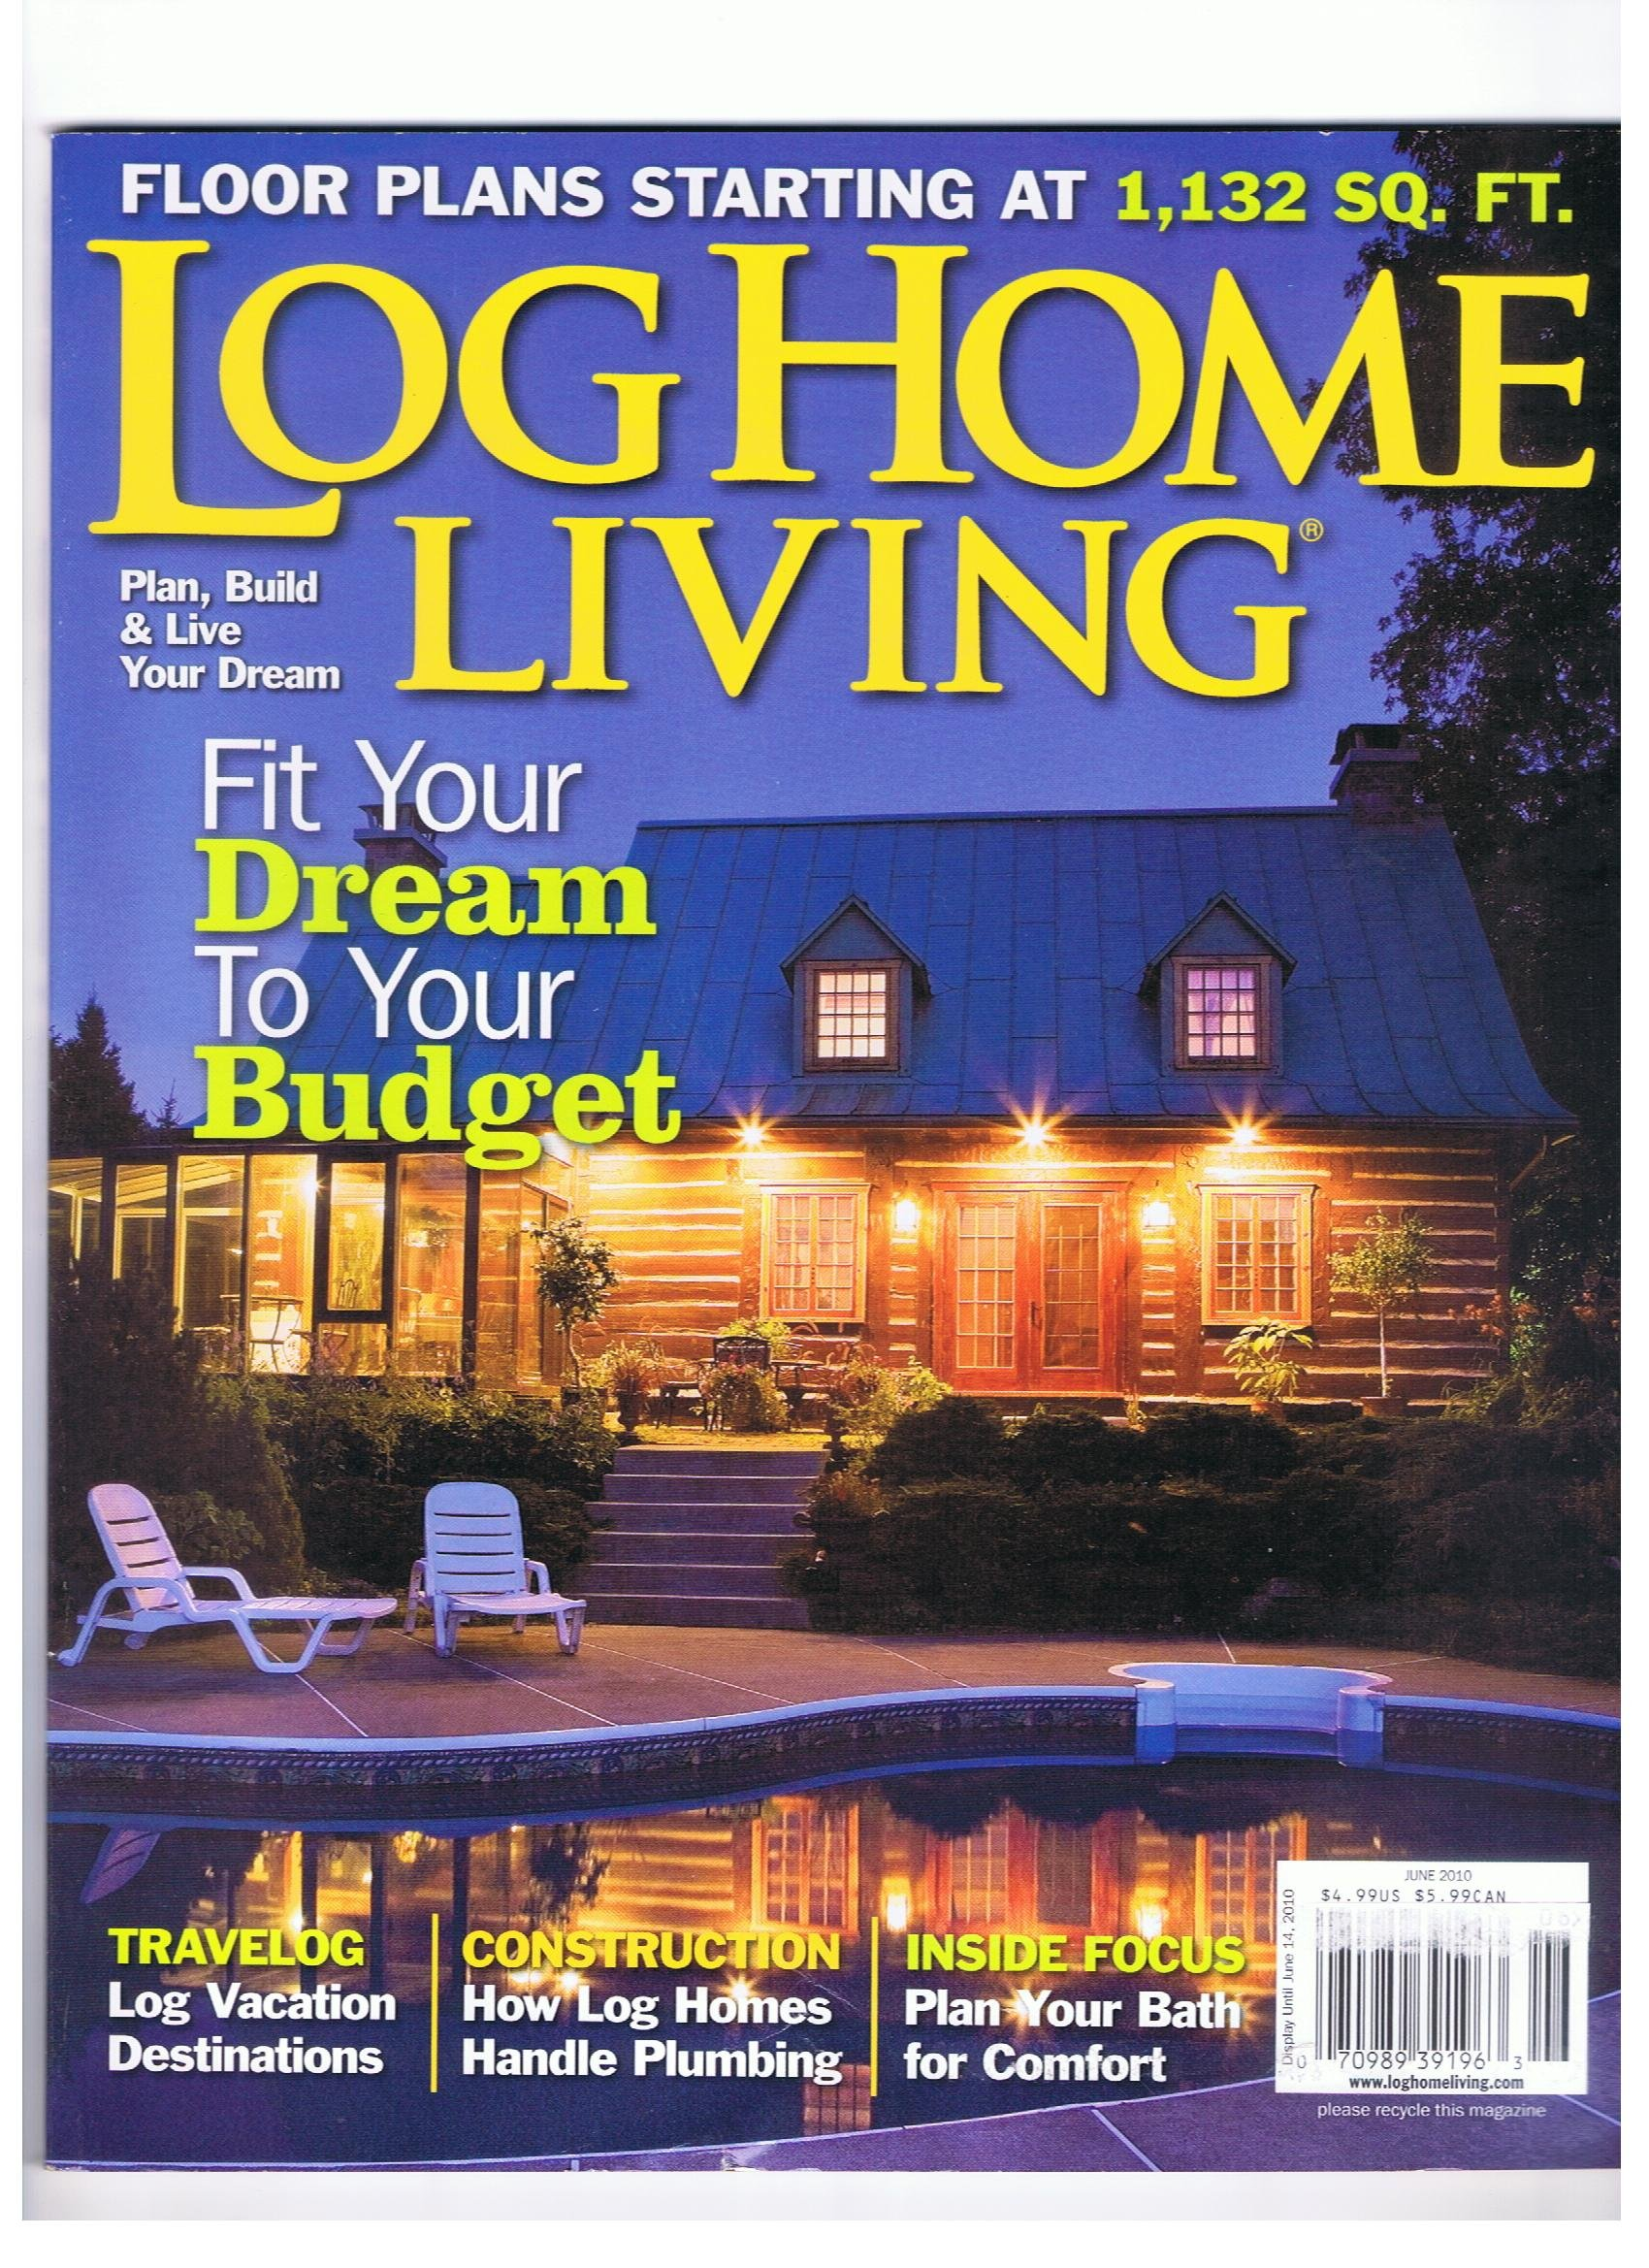 Superior Log Home Living Magazine June 2010 Fit Your Dream To Your Budget, Floor  Plans Starting At 1, 132 Sq. Ft., How Log Homes Handle Plumbing, Plan Your  Bath For ...